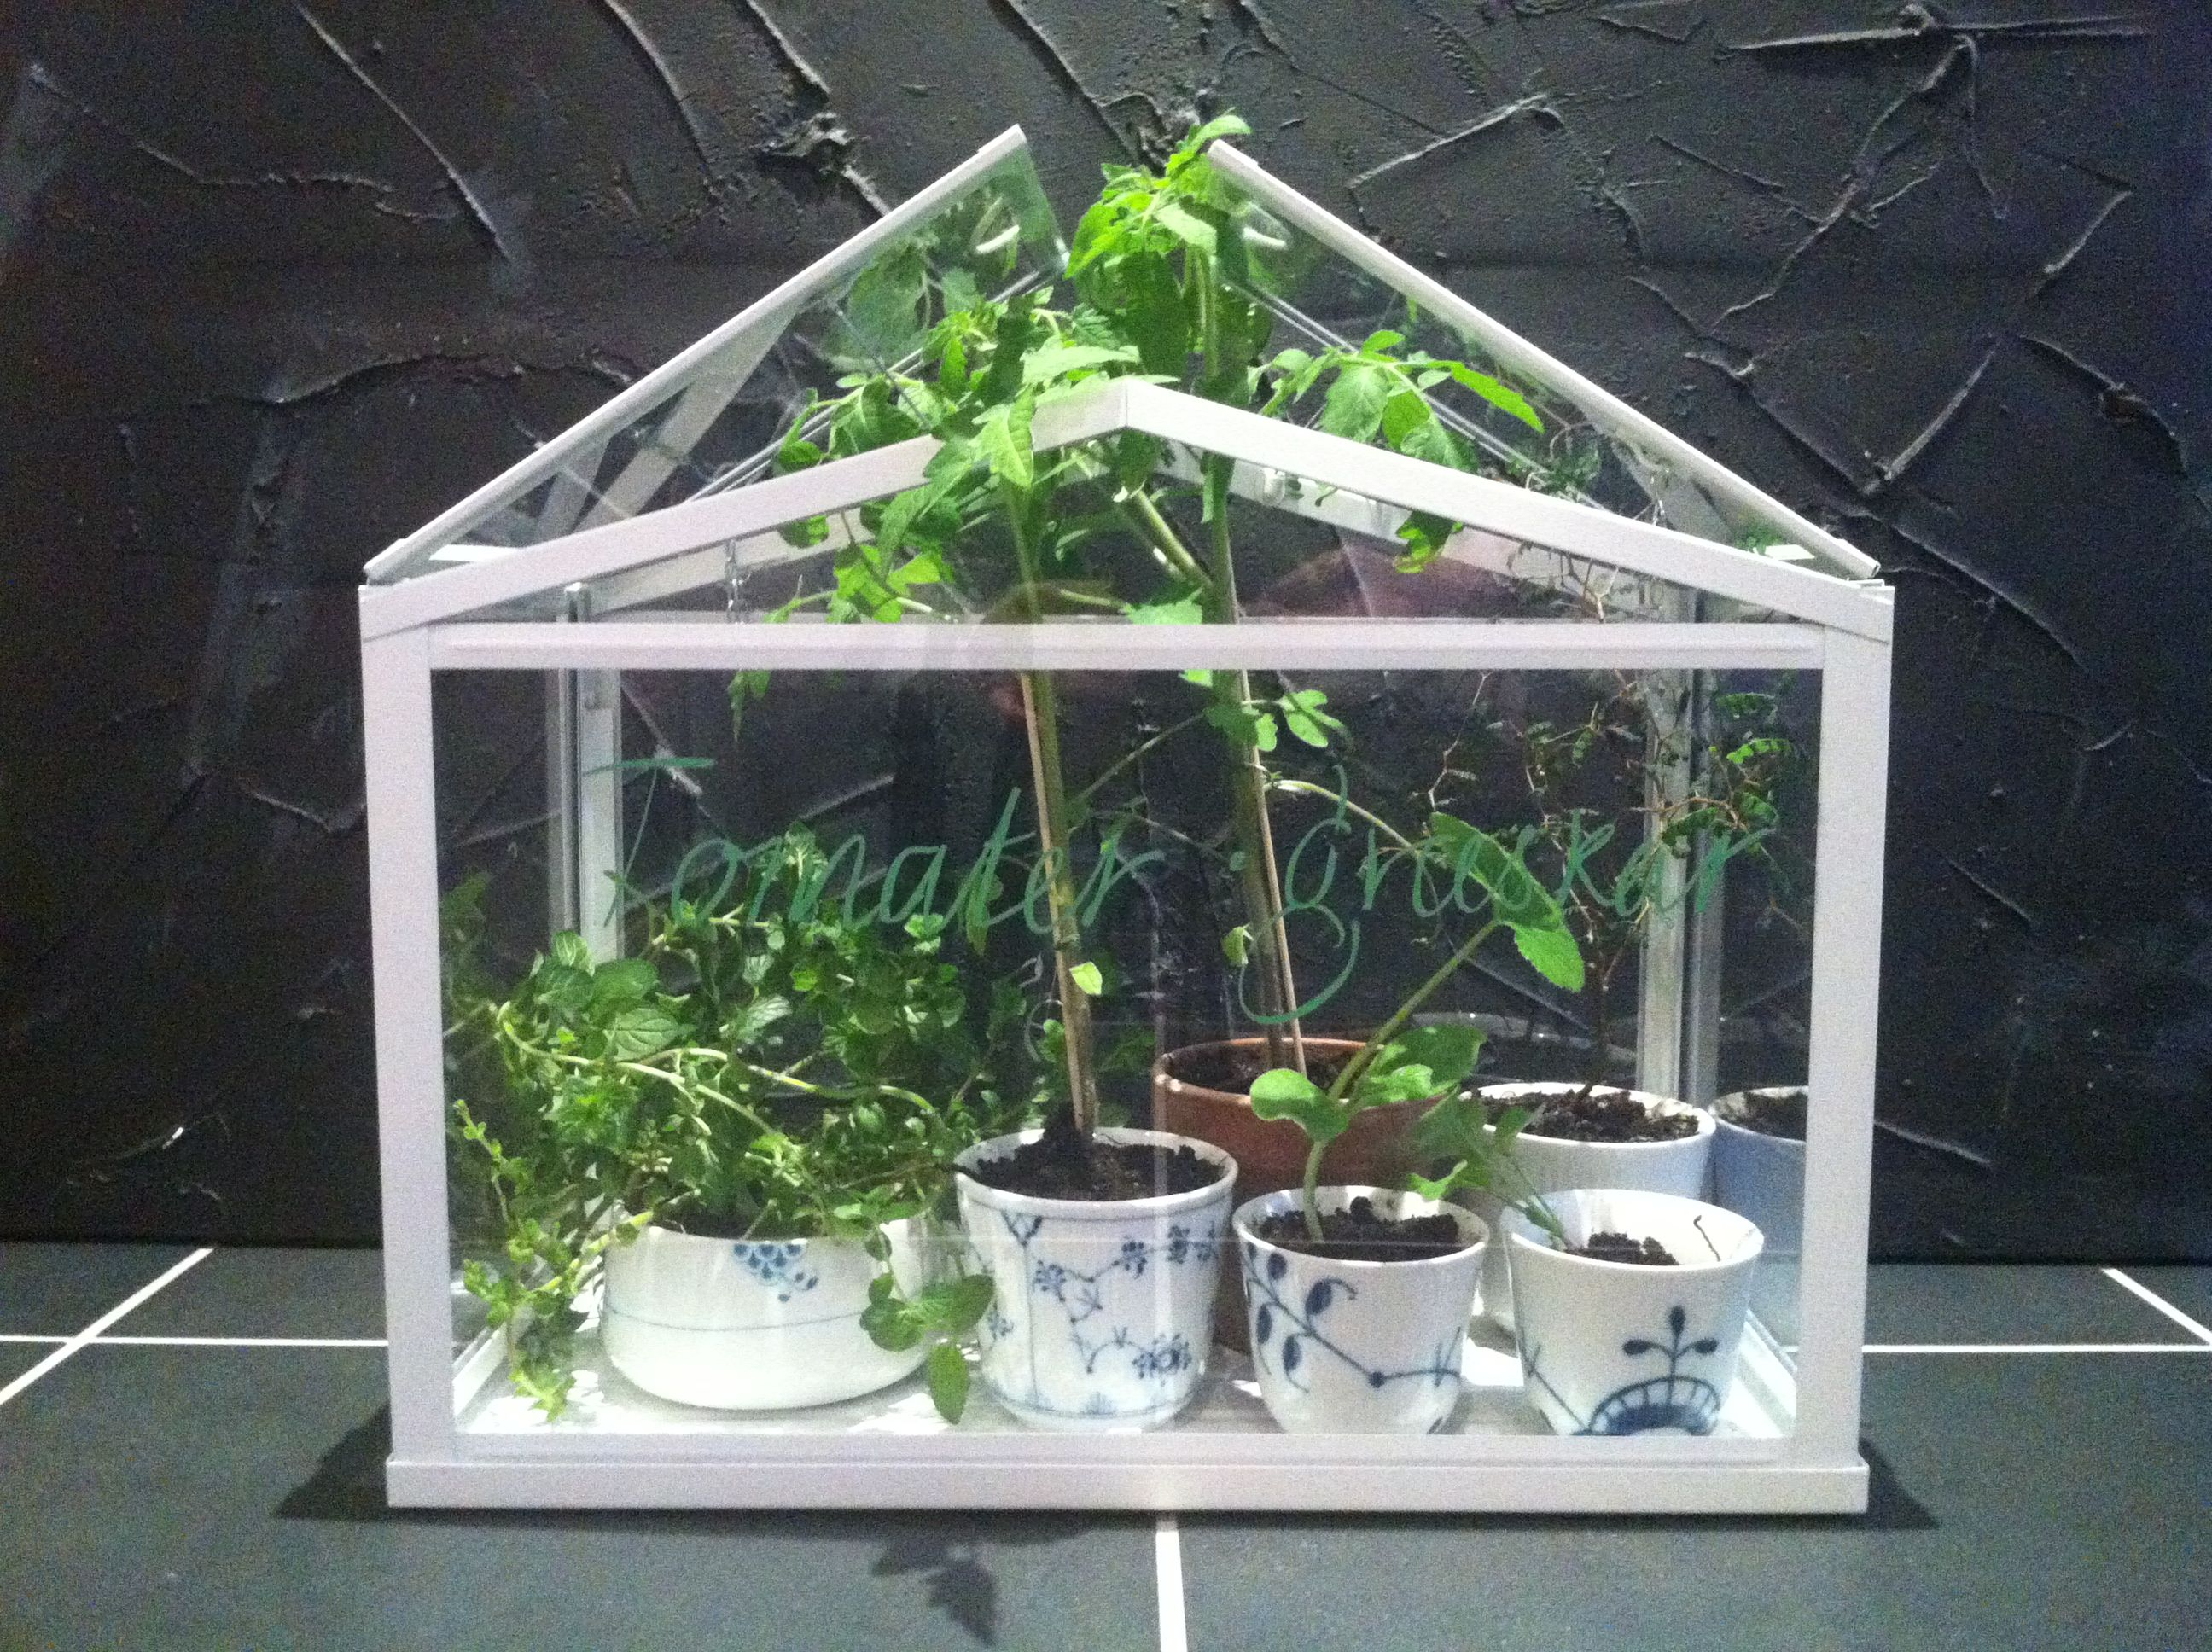 Ikea Mini greenhouse, Royal Copenhagen cups